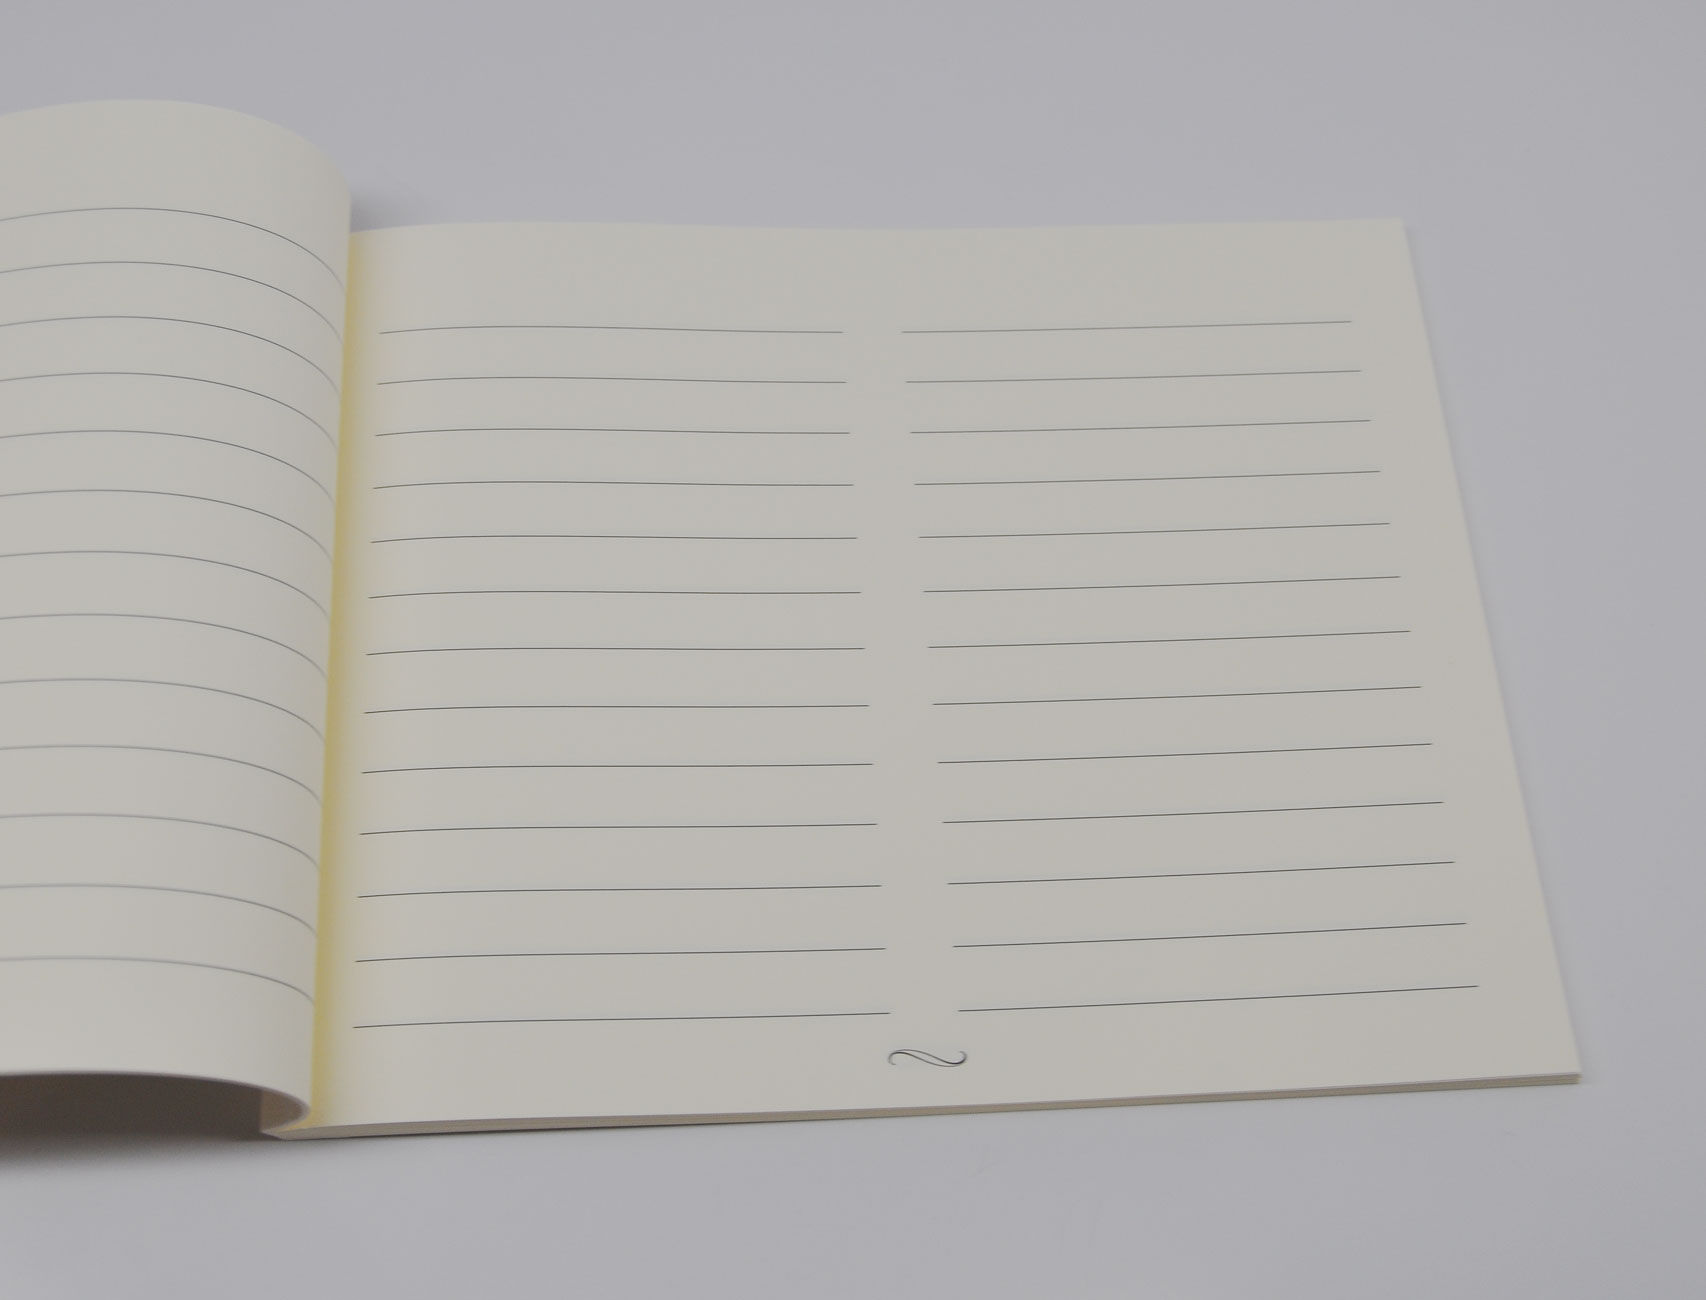 Address book blank page template